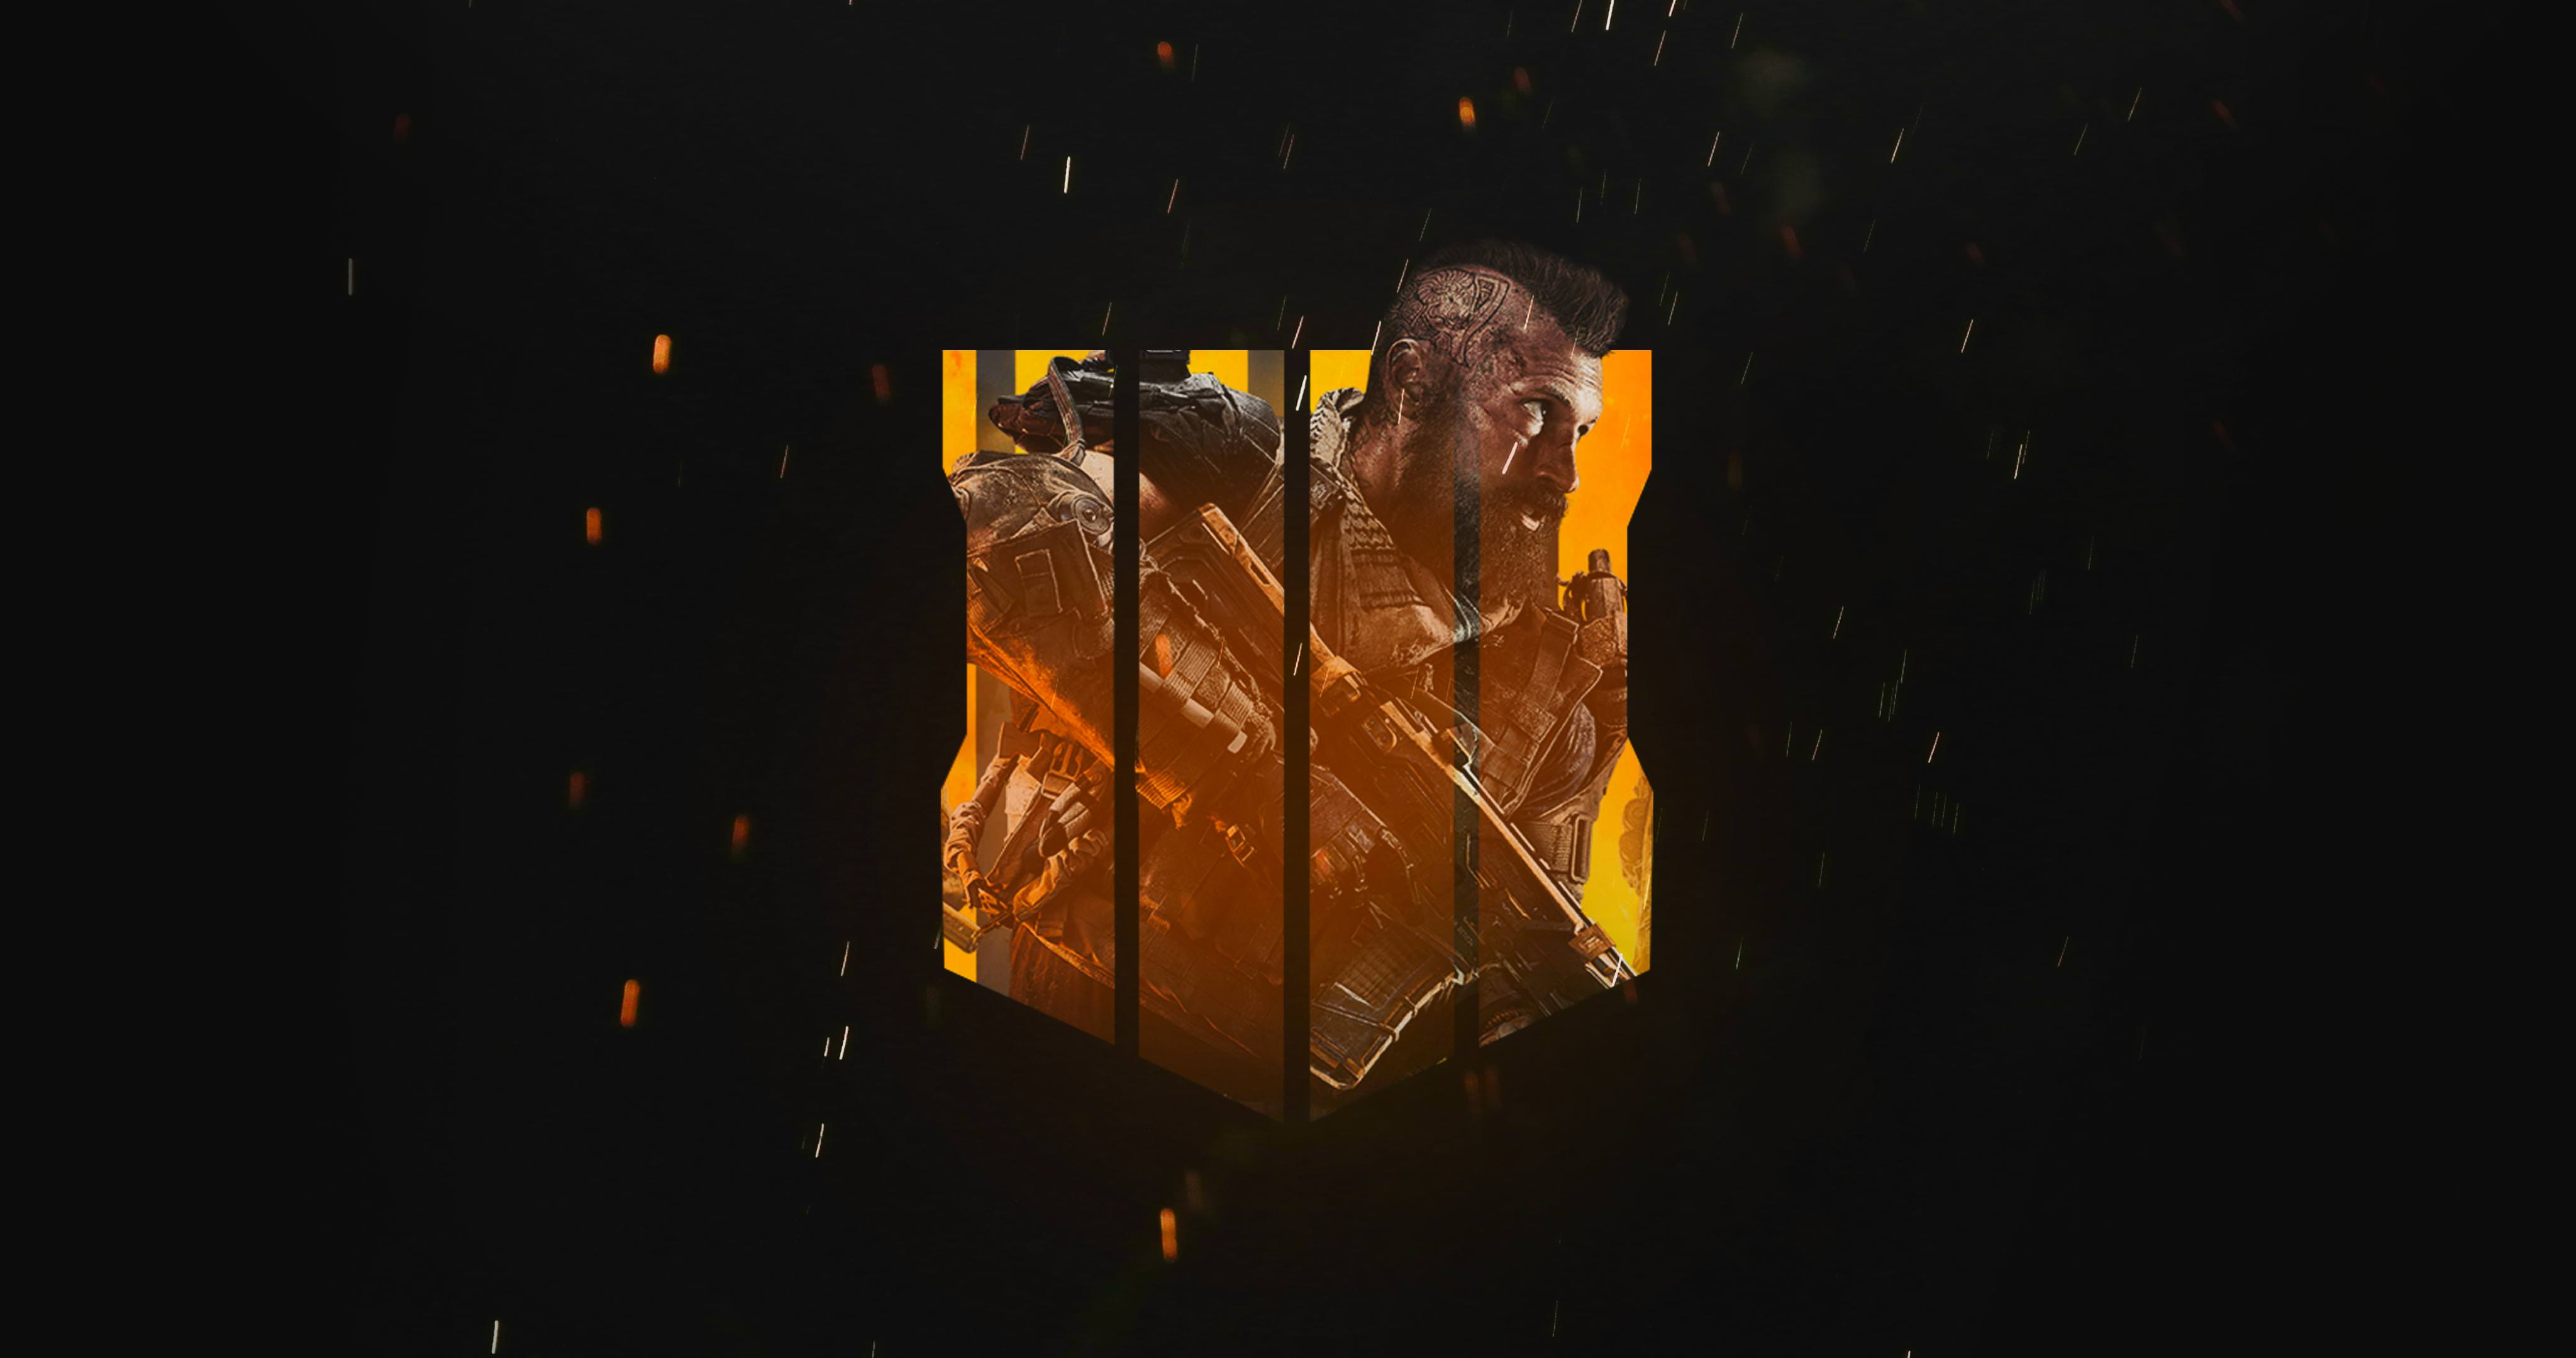 Free Download Call Of Duty Black Ops 4 Wallpapers Blackout